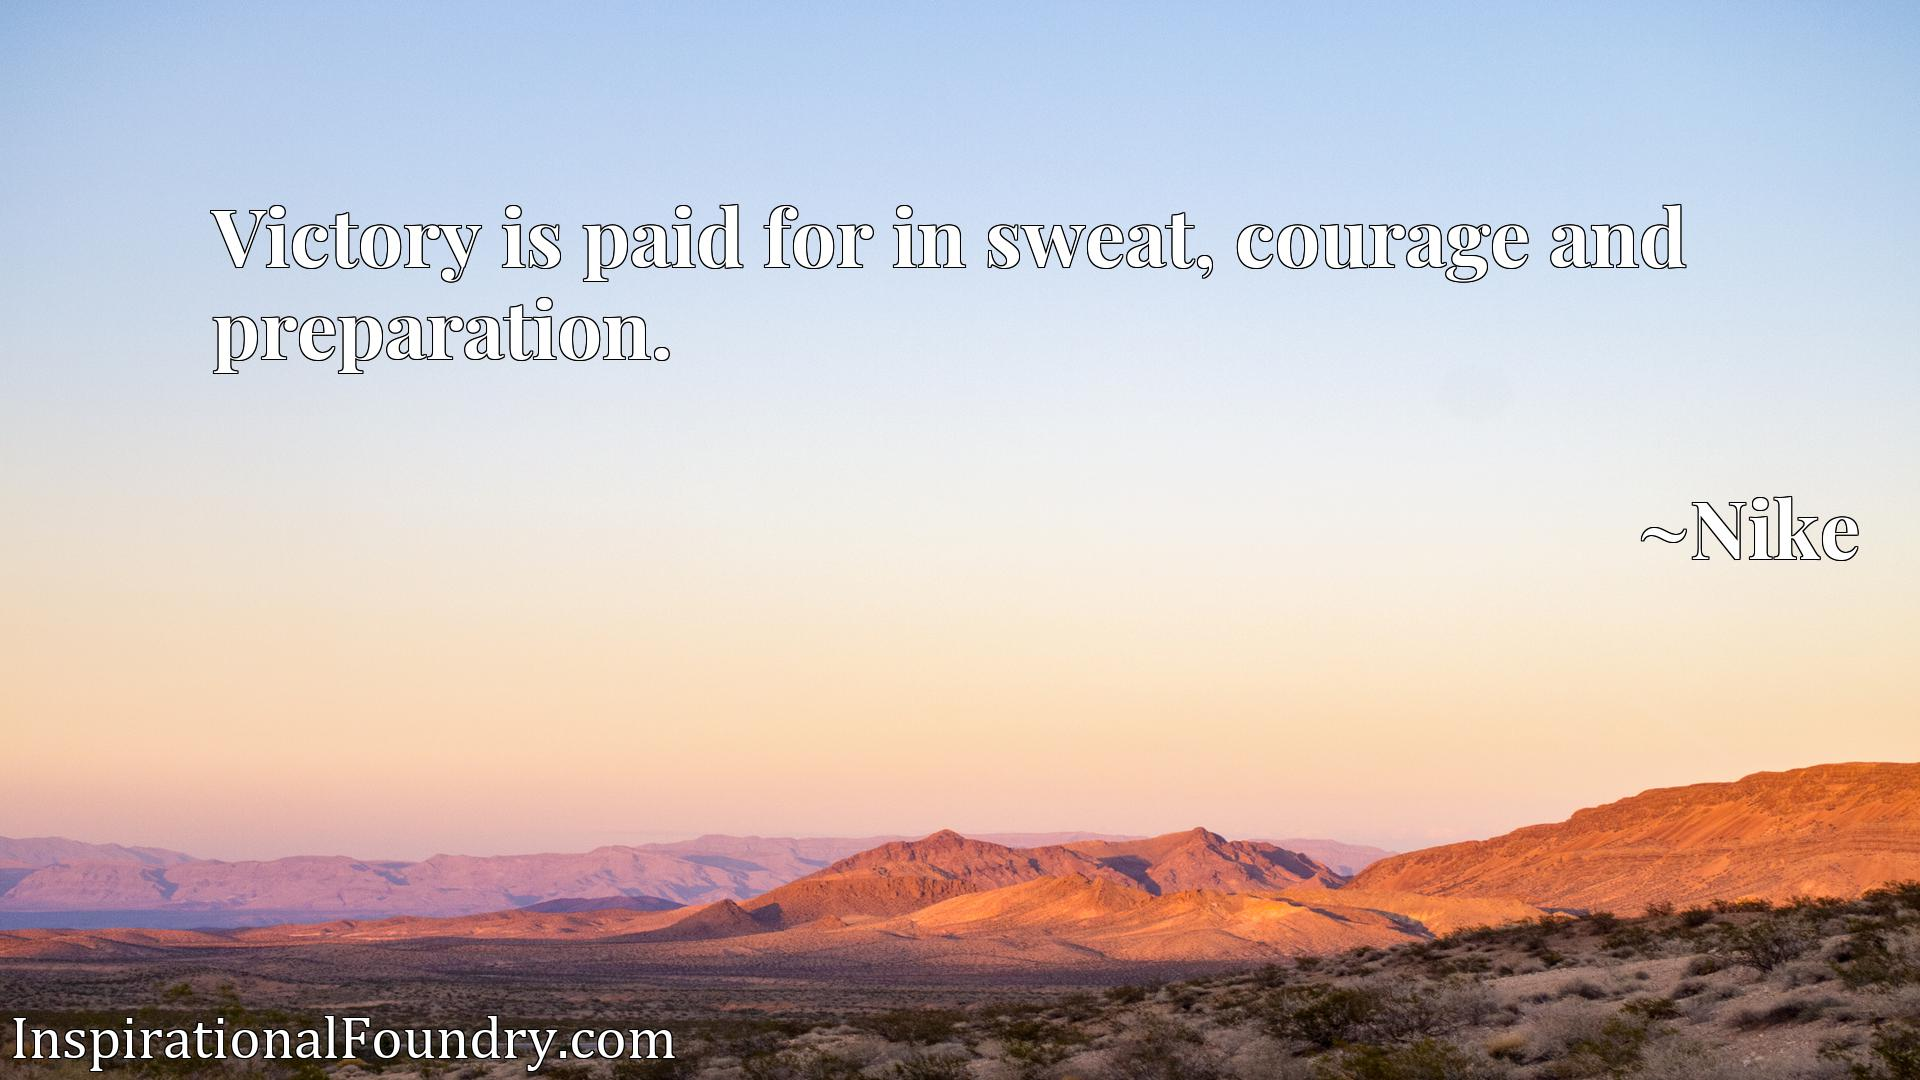 Victory is paid for in sweat, courage and preparation.